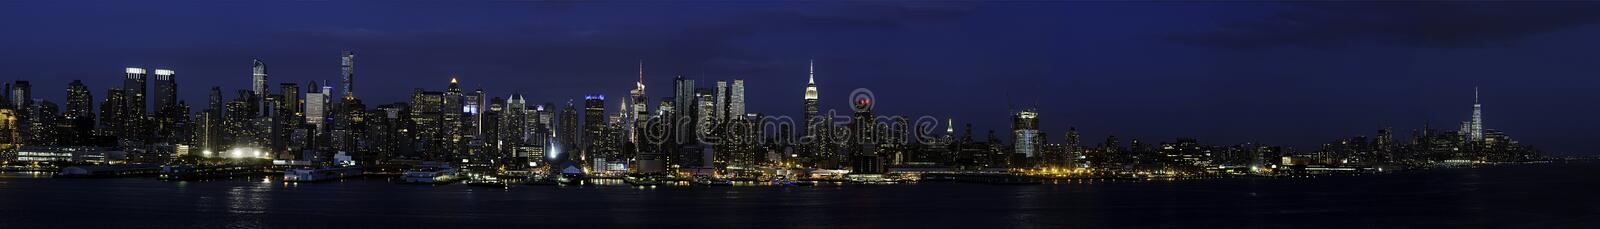 West side of Manhattan from NJ at evening time stock photography